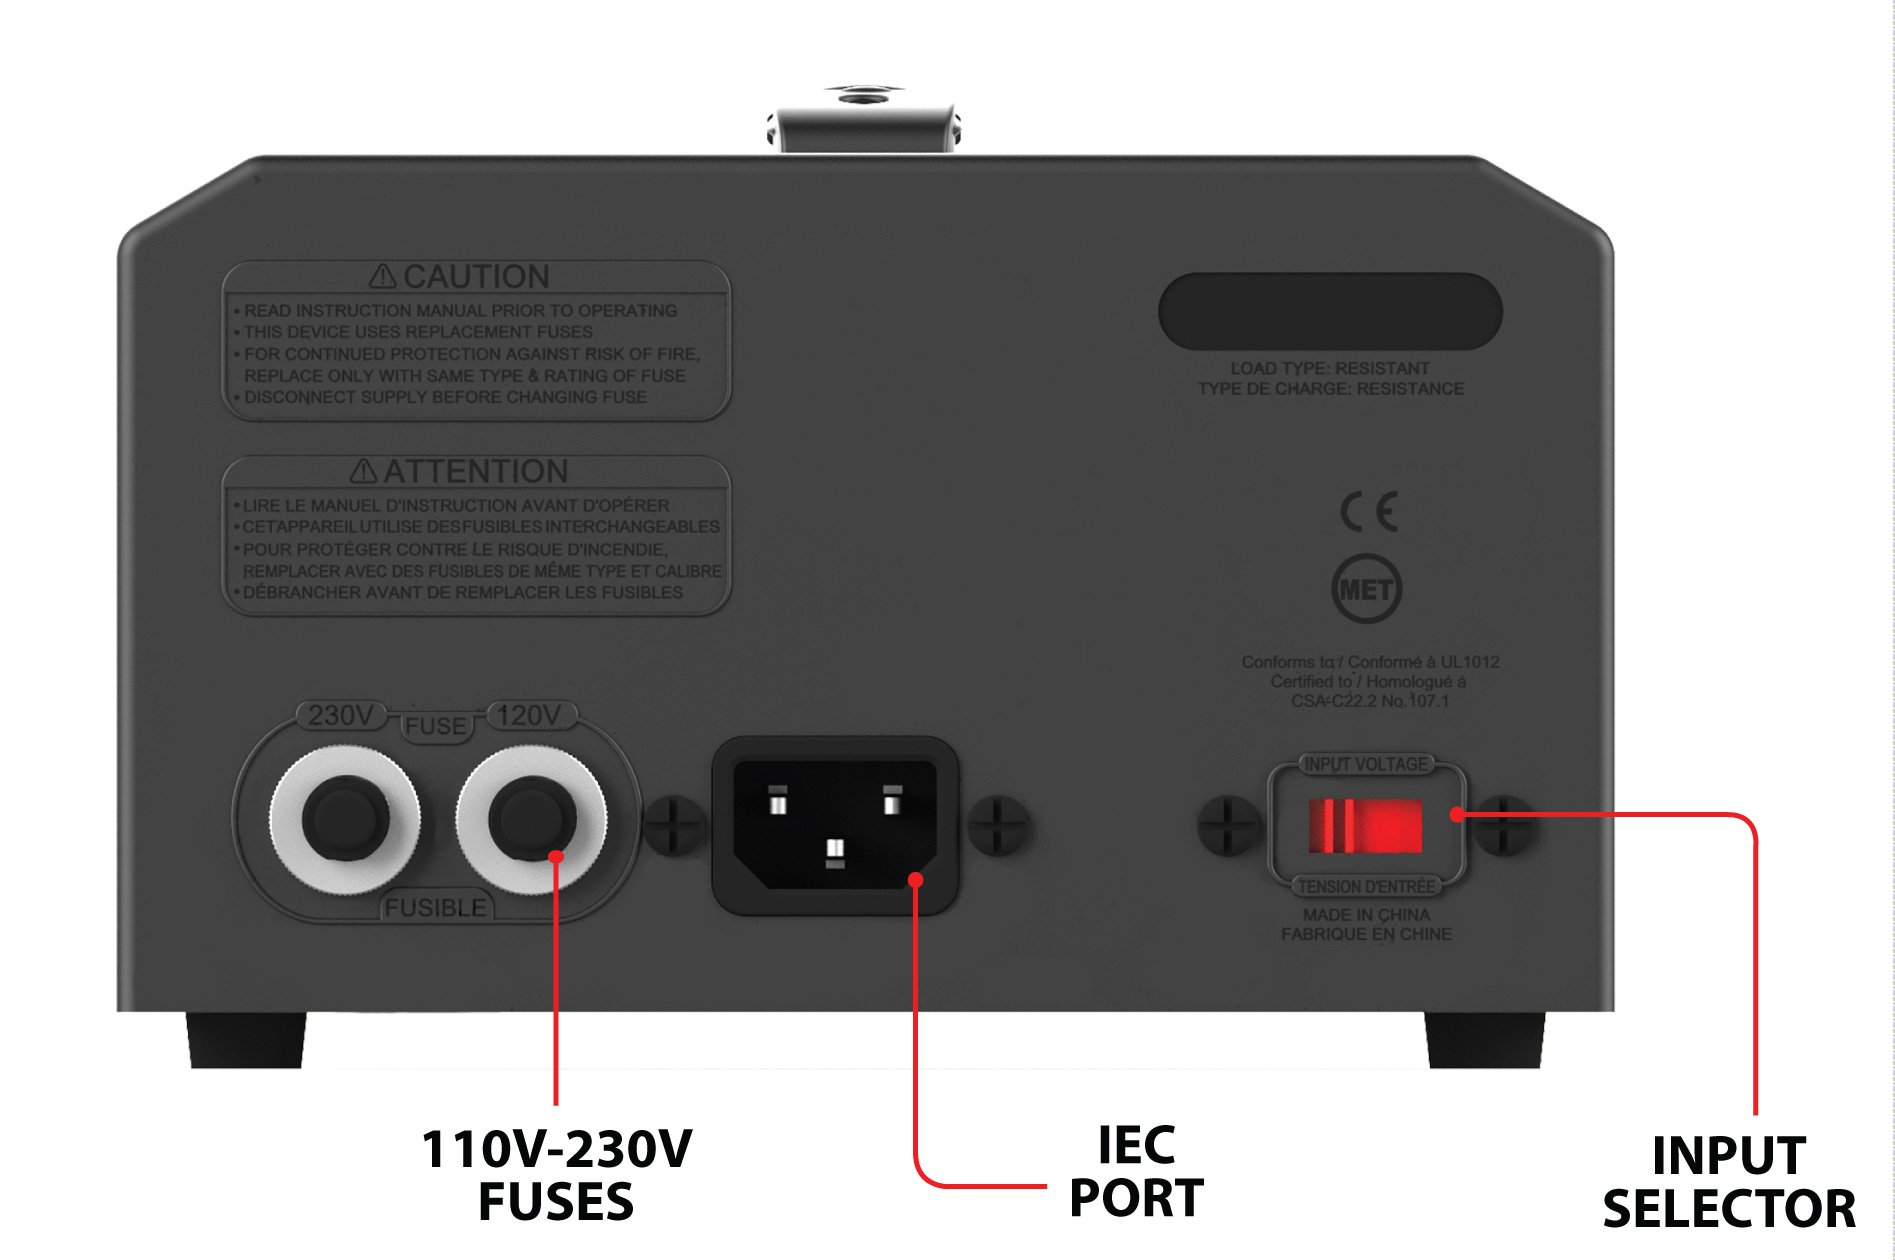 KRIËGER 1700 Watt Voltage Transformer Step up/down 120V / 230V AC outlet American European Converter 50 60 Hz outlets 2.1A USB - IEC German Schuko Nema 5-15P cord connection MET certified under UL CSA by KRIEGER